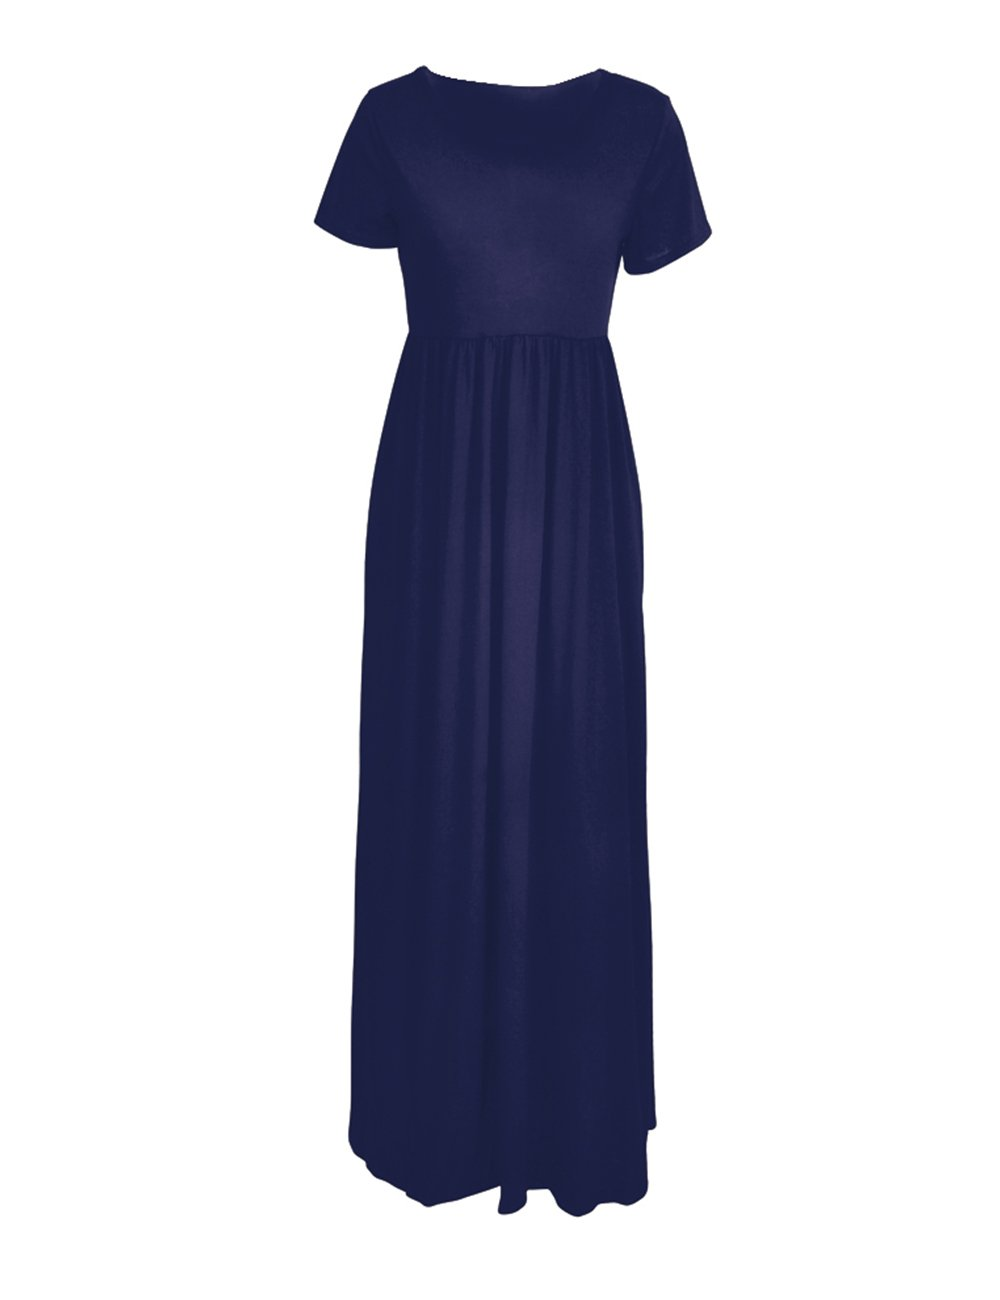 ORQ Women's Short Sleeve Loose Plain Casual Long Maxi Tunic Dress With Pockets by ORQ (Image #5)